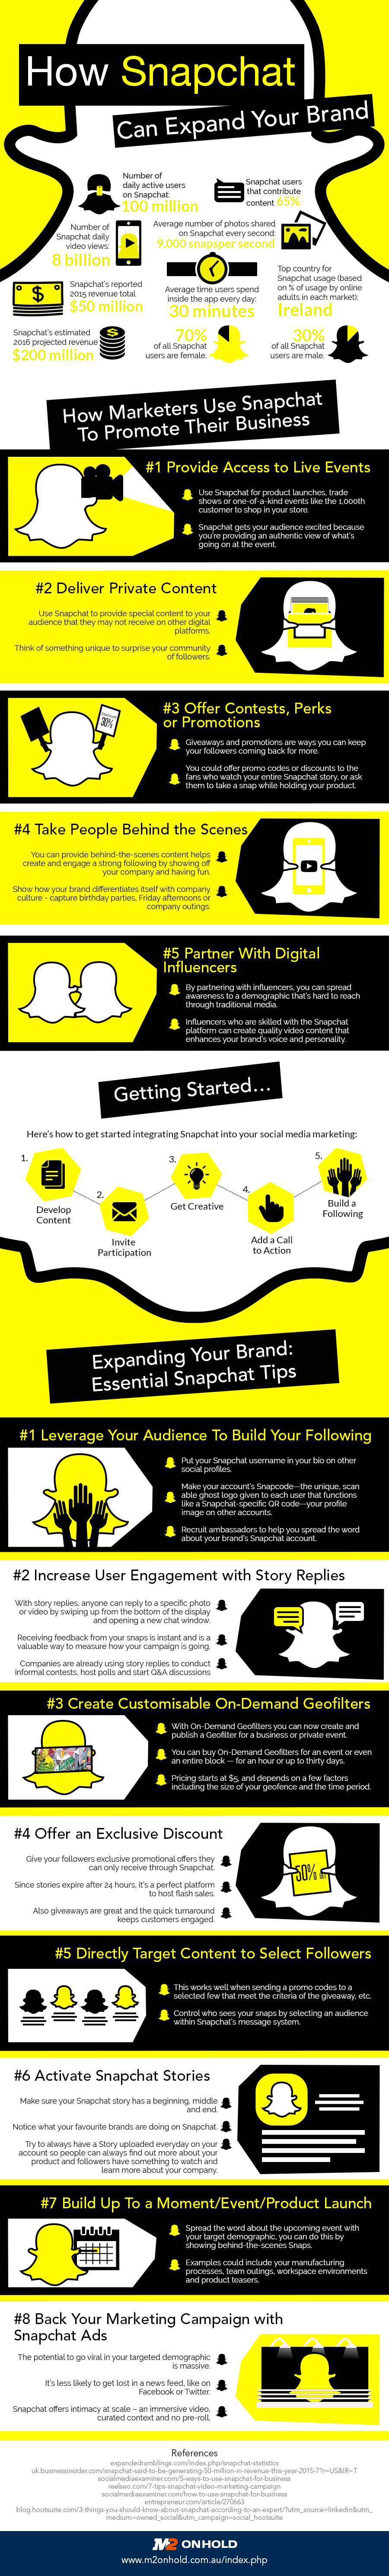 how-snapchat-can-expand-your-brand-infographic